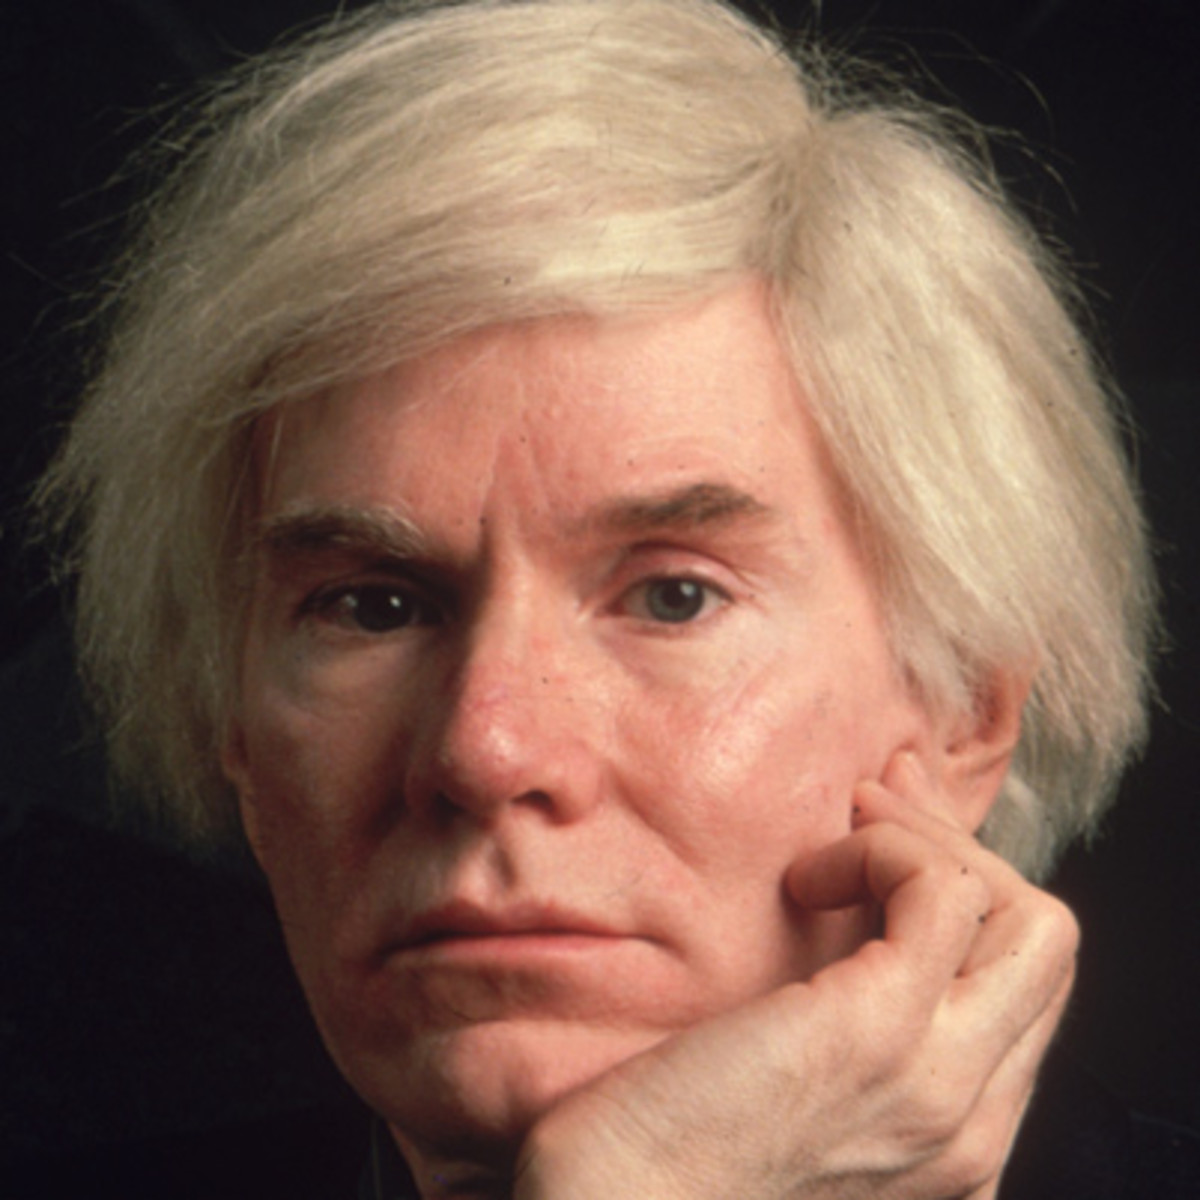 Andy Warhol - Filmmaker, Painter - Biography.com